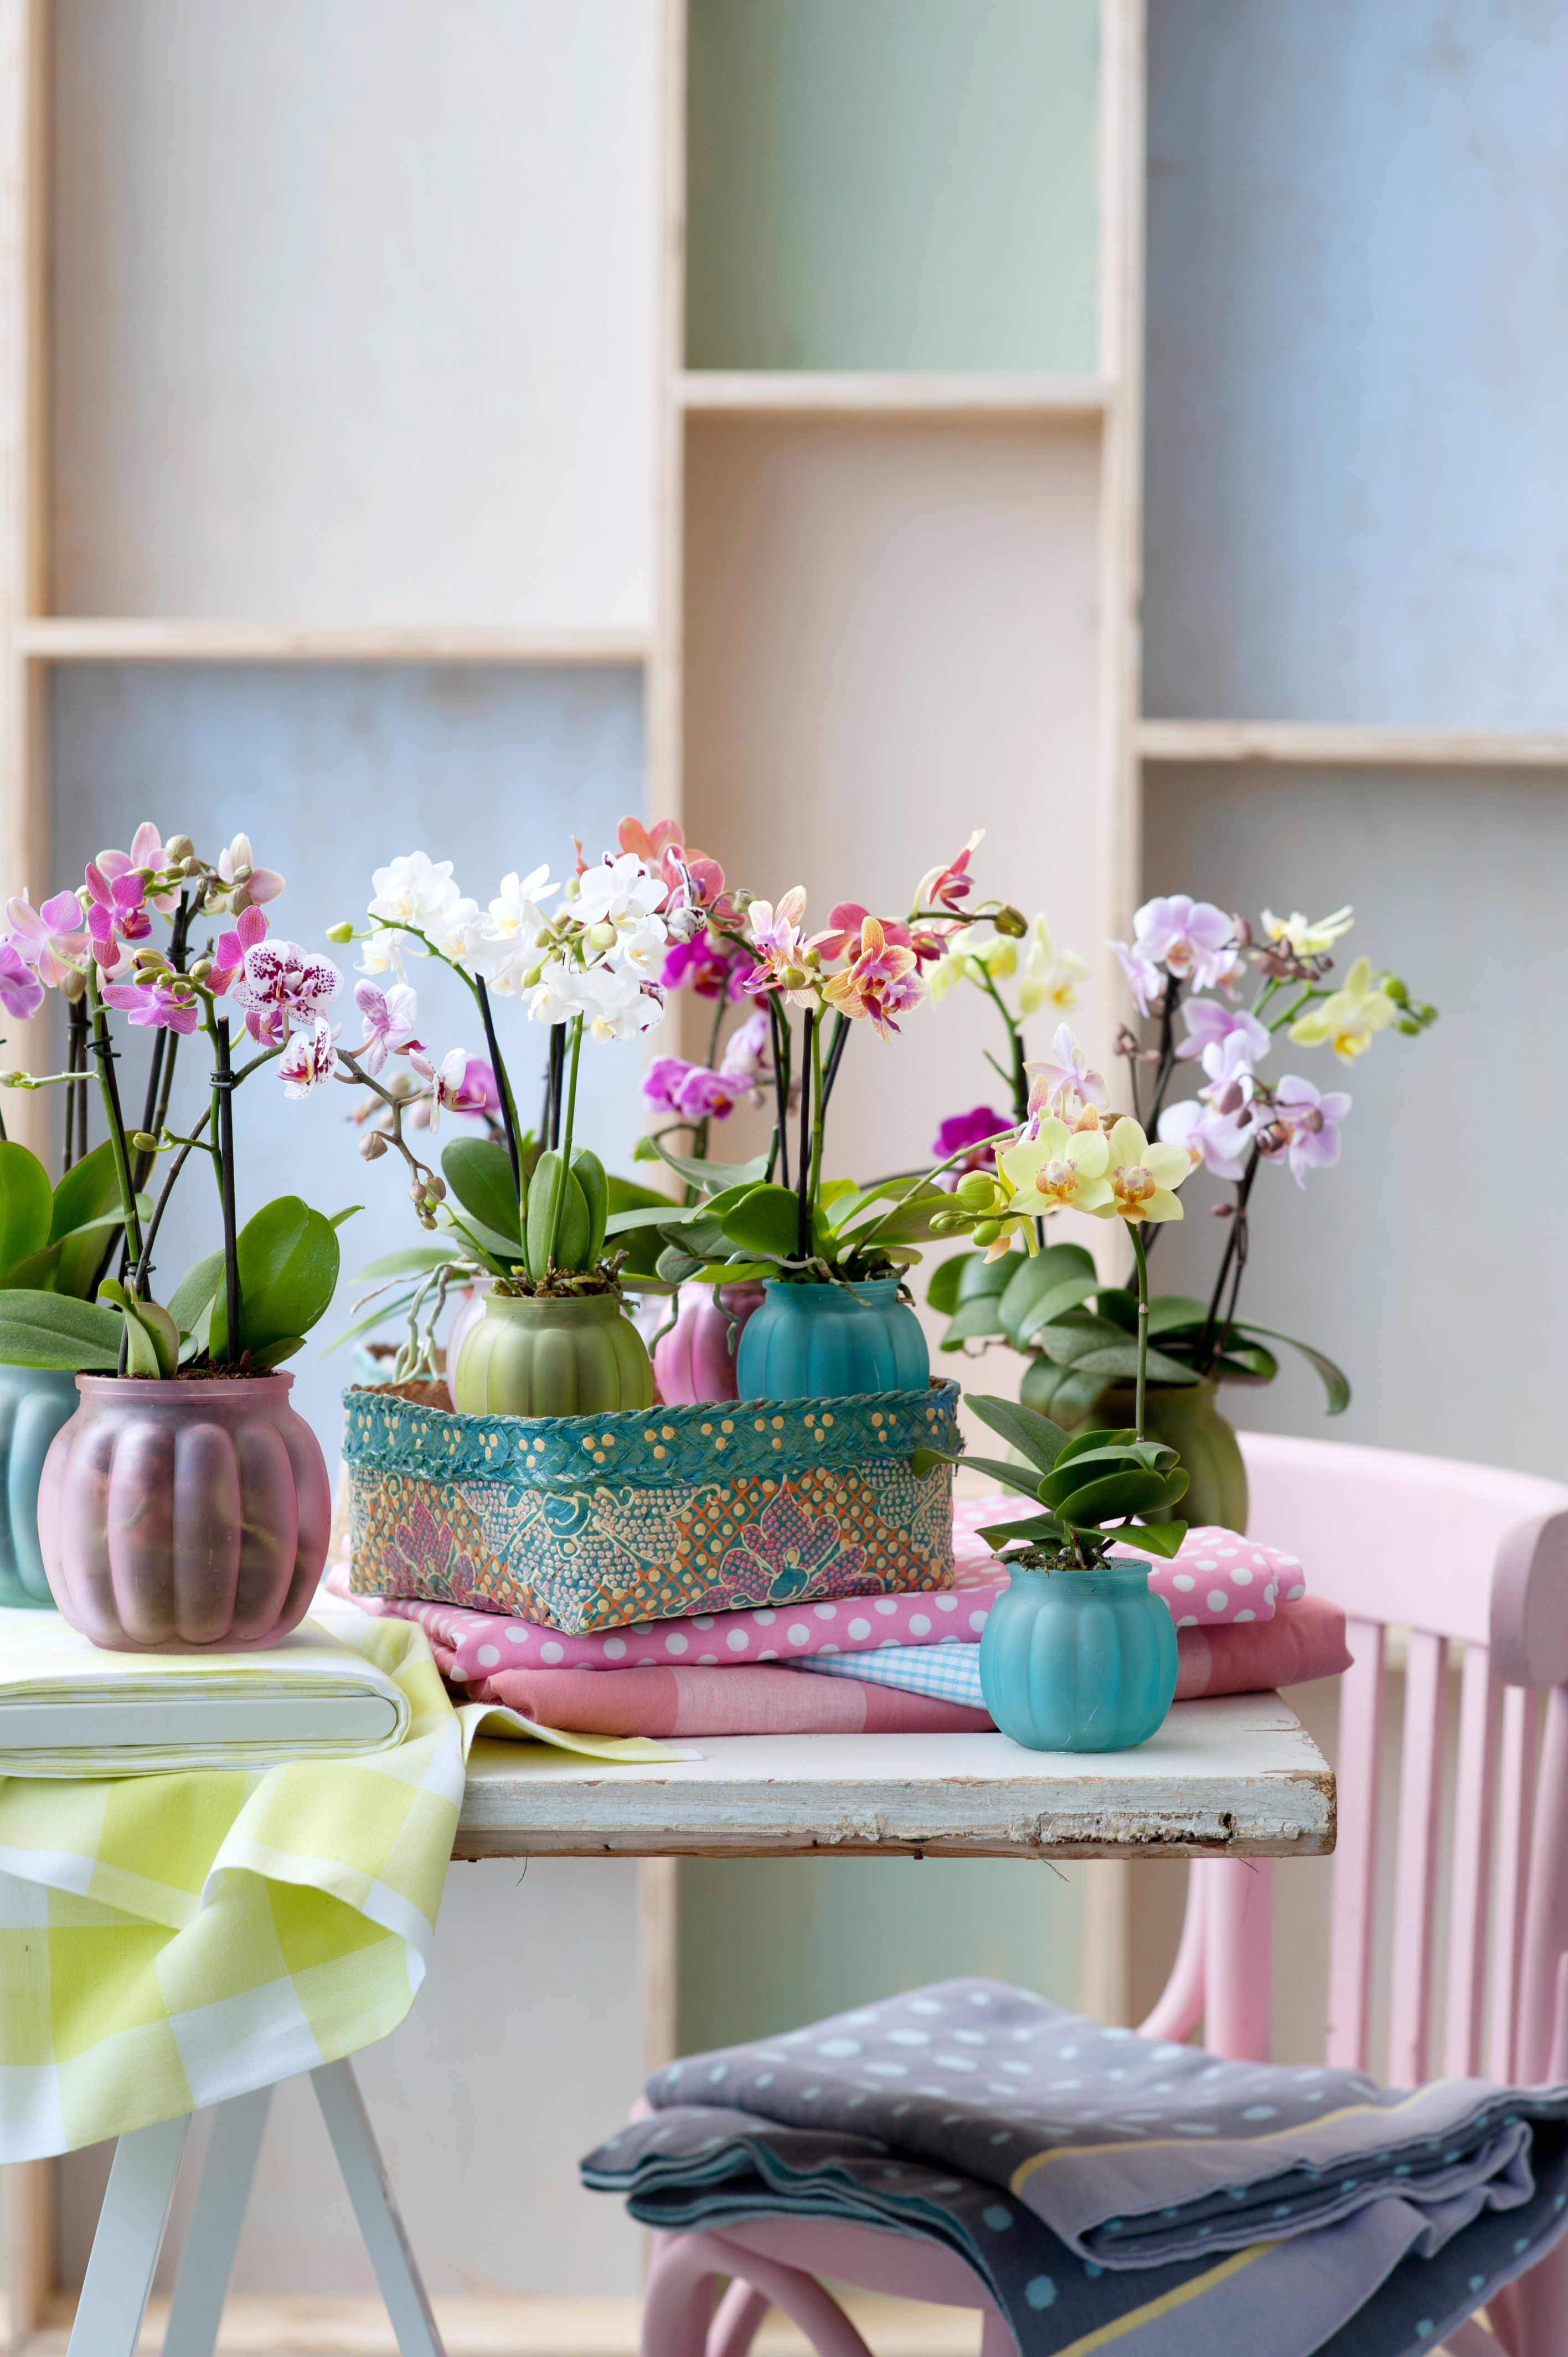 Orchid Orchidee Bunt Living Inspiration Wohnideen Phalaenopsis Pflanzenfreude